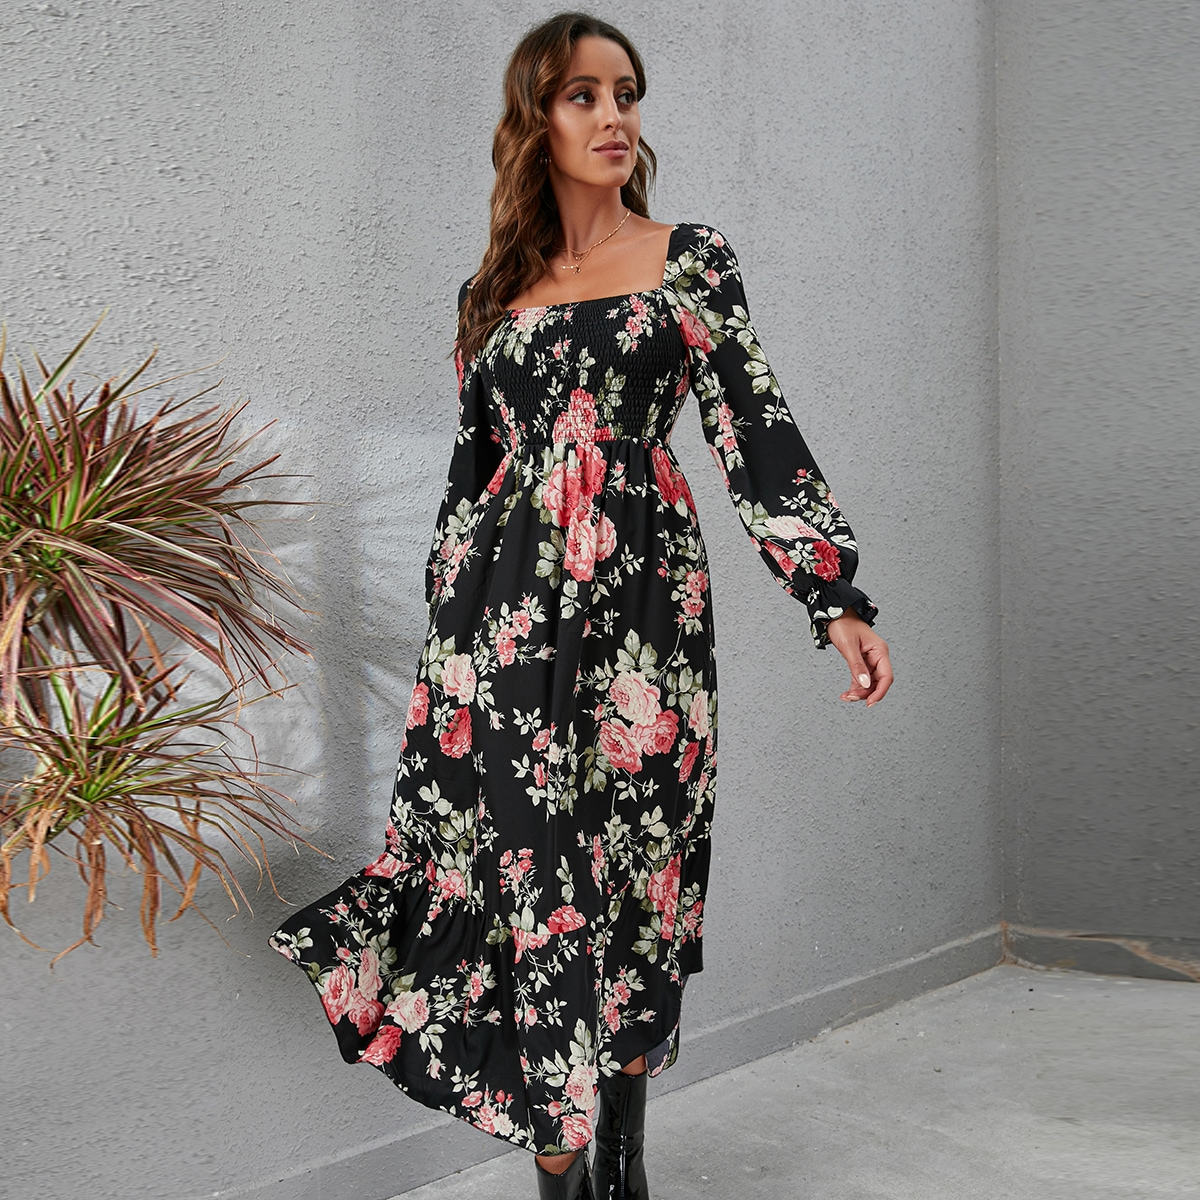 Square Neck Floral Print Knotted Back Ruffle Hem Dress, SHEIN  - buy with discount